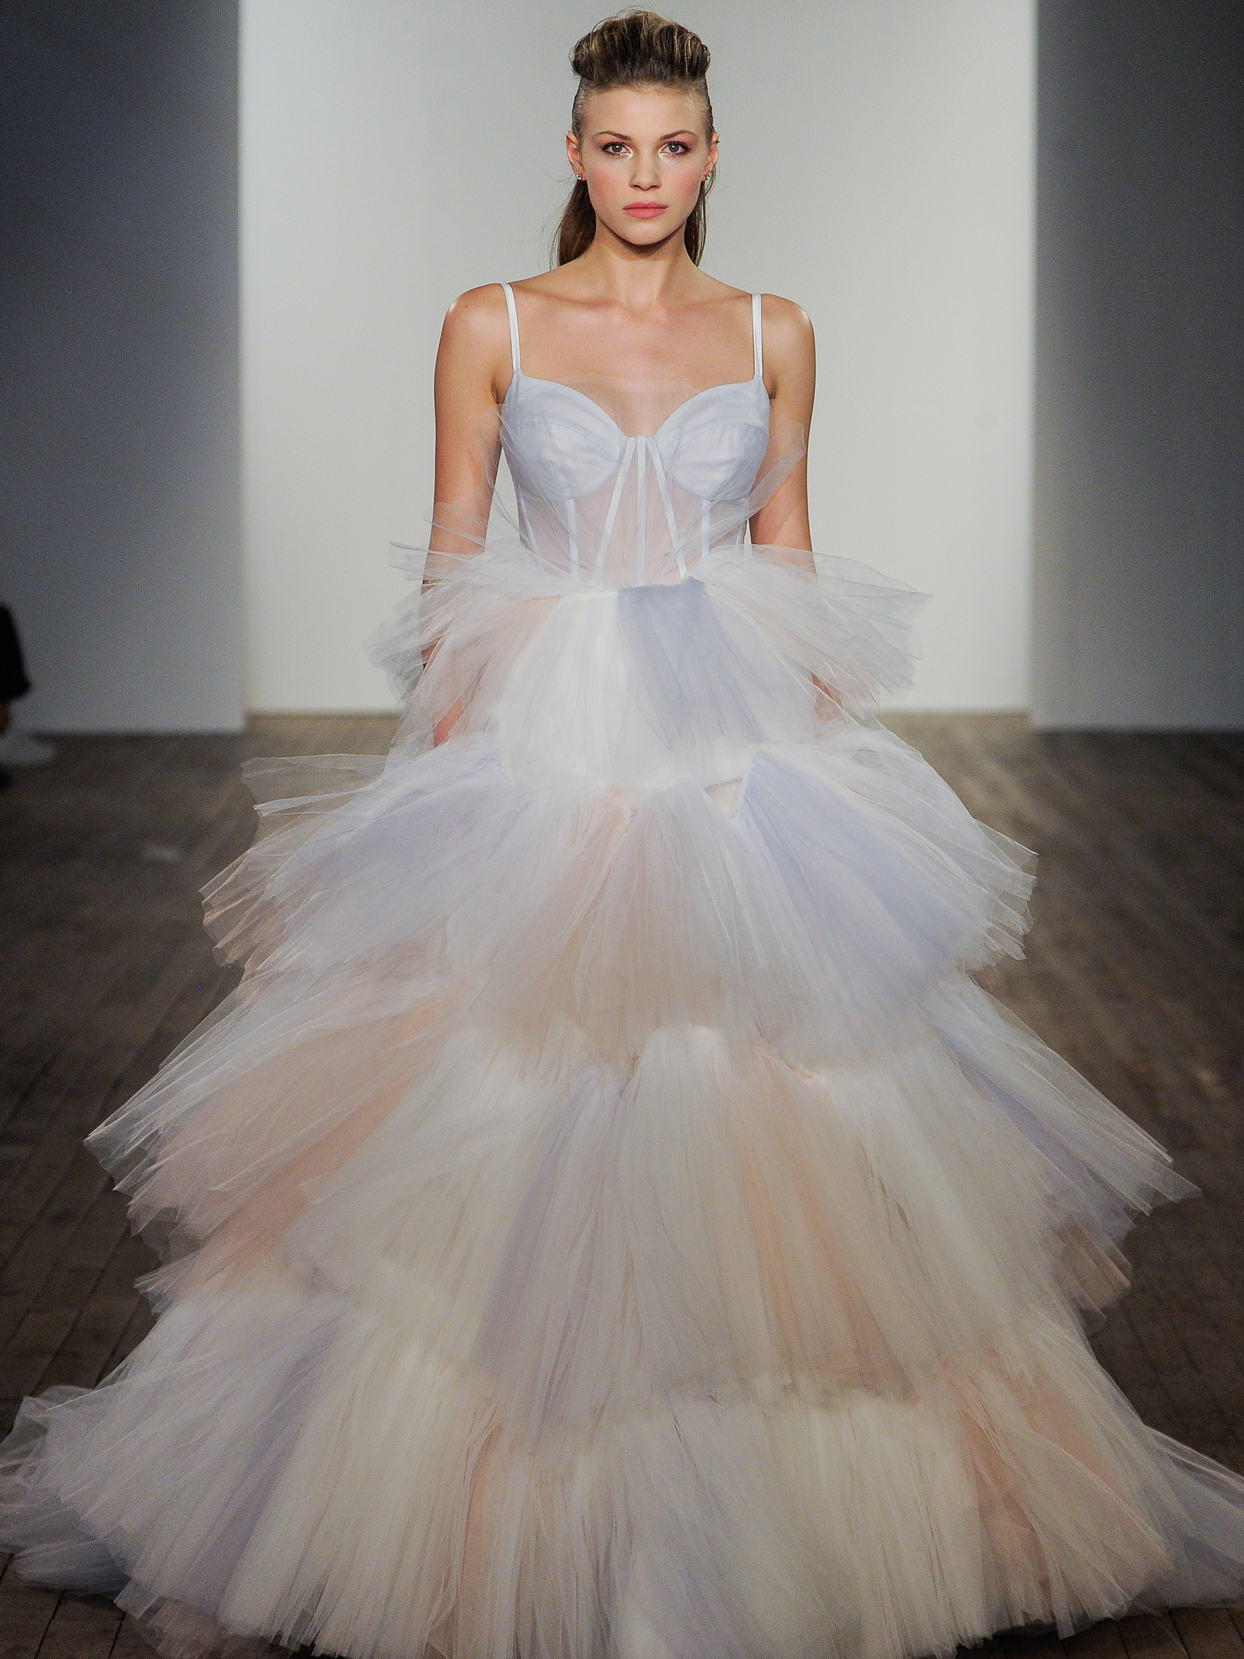 Hayley Paige tulle ballgown sheer corset bodice wedding dress fall 2020